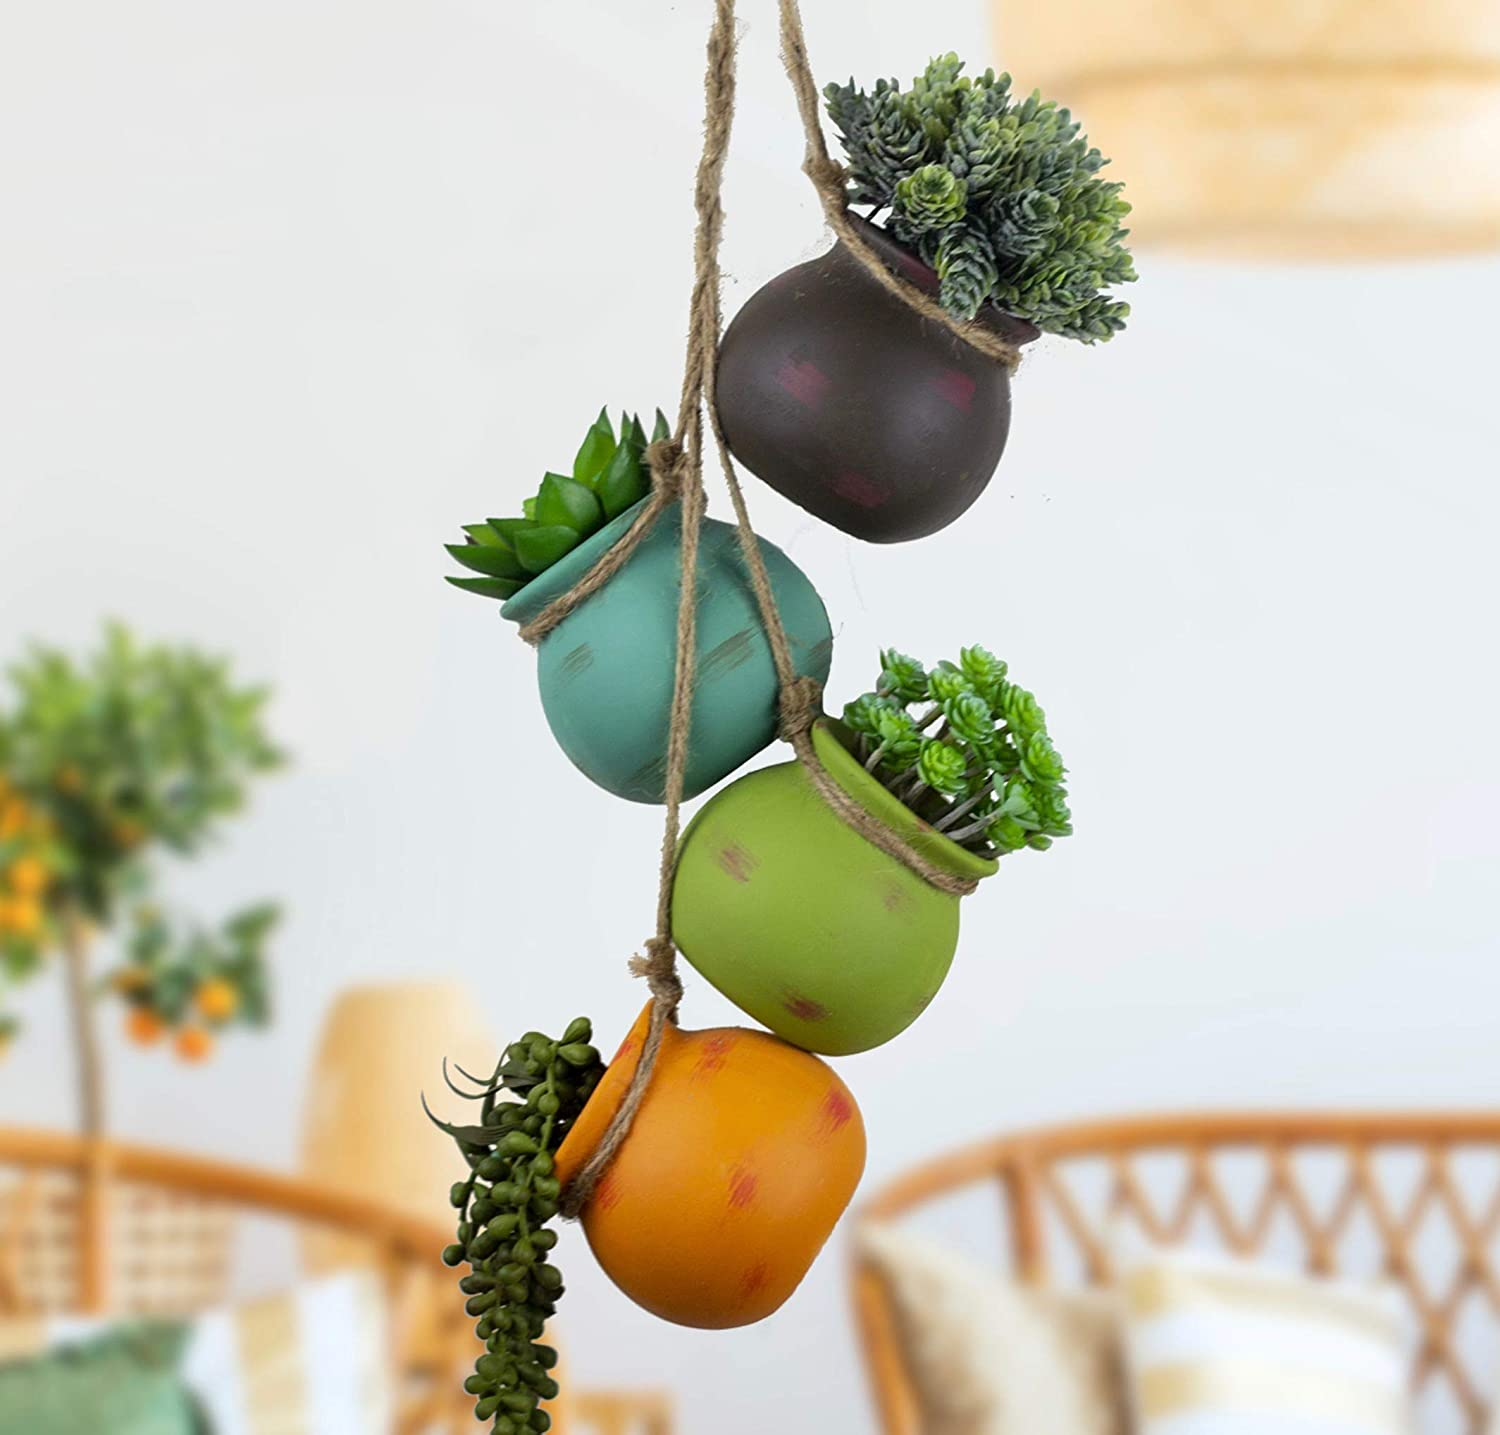 Best Pottery Hanging Succulent Planters Multicolor Ceramic 4 Pot Set Ceiling Wall Planter Pots for Plants, Flowers Cactus Perfect Decoration for Indoor Outdoor